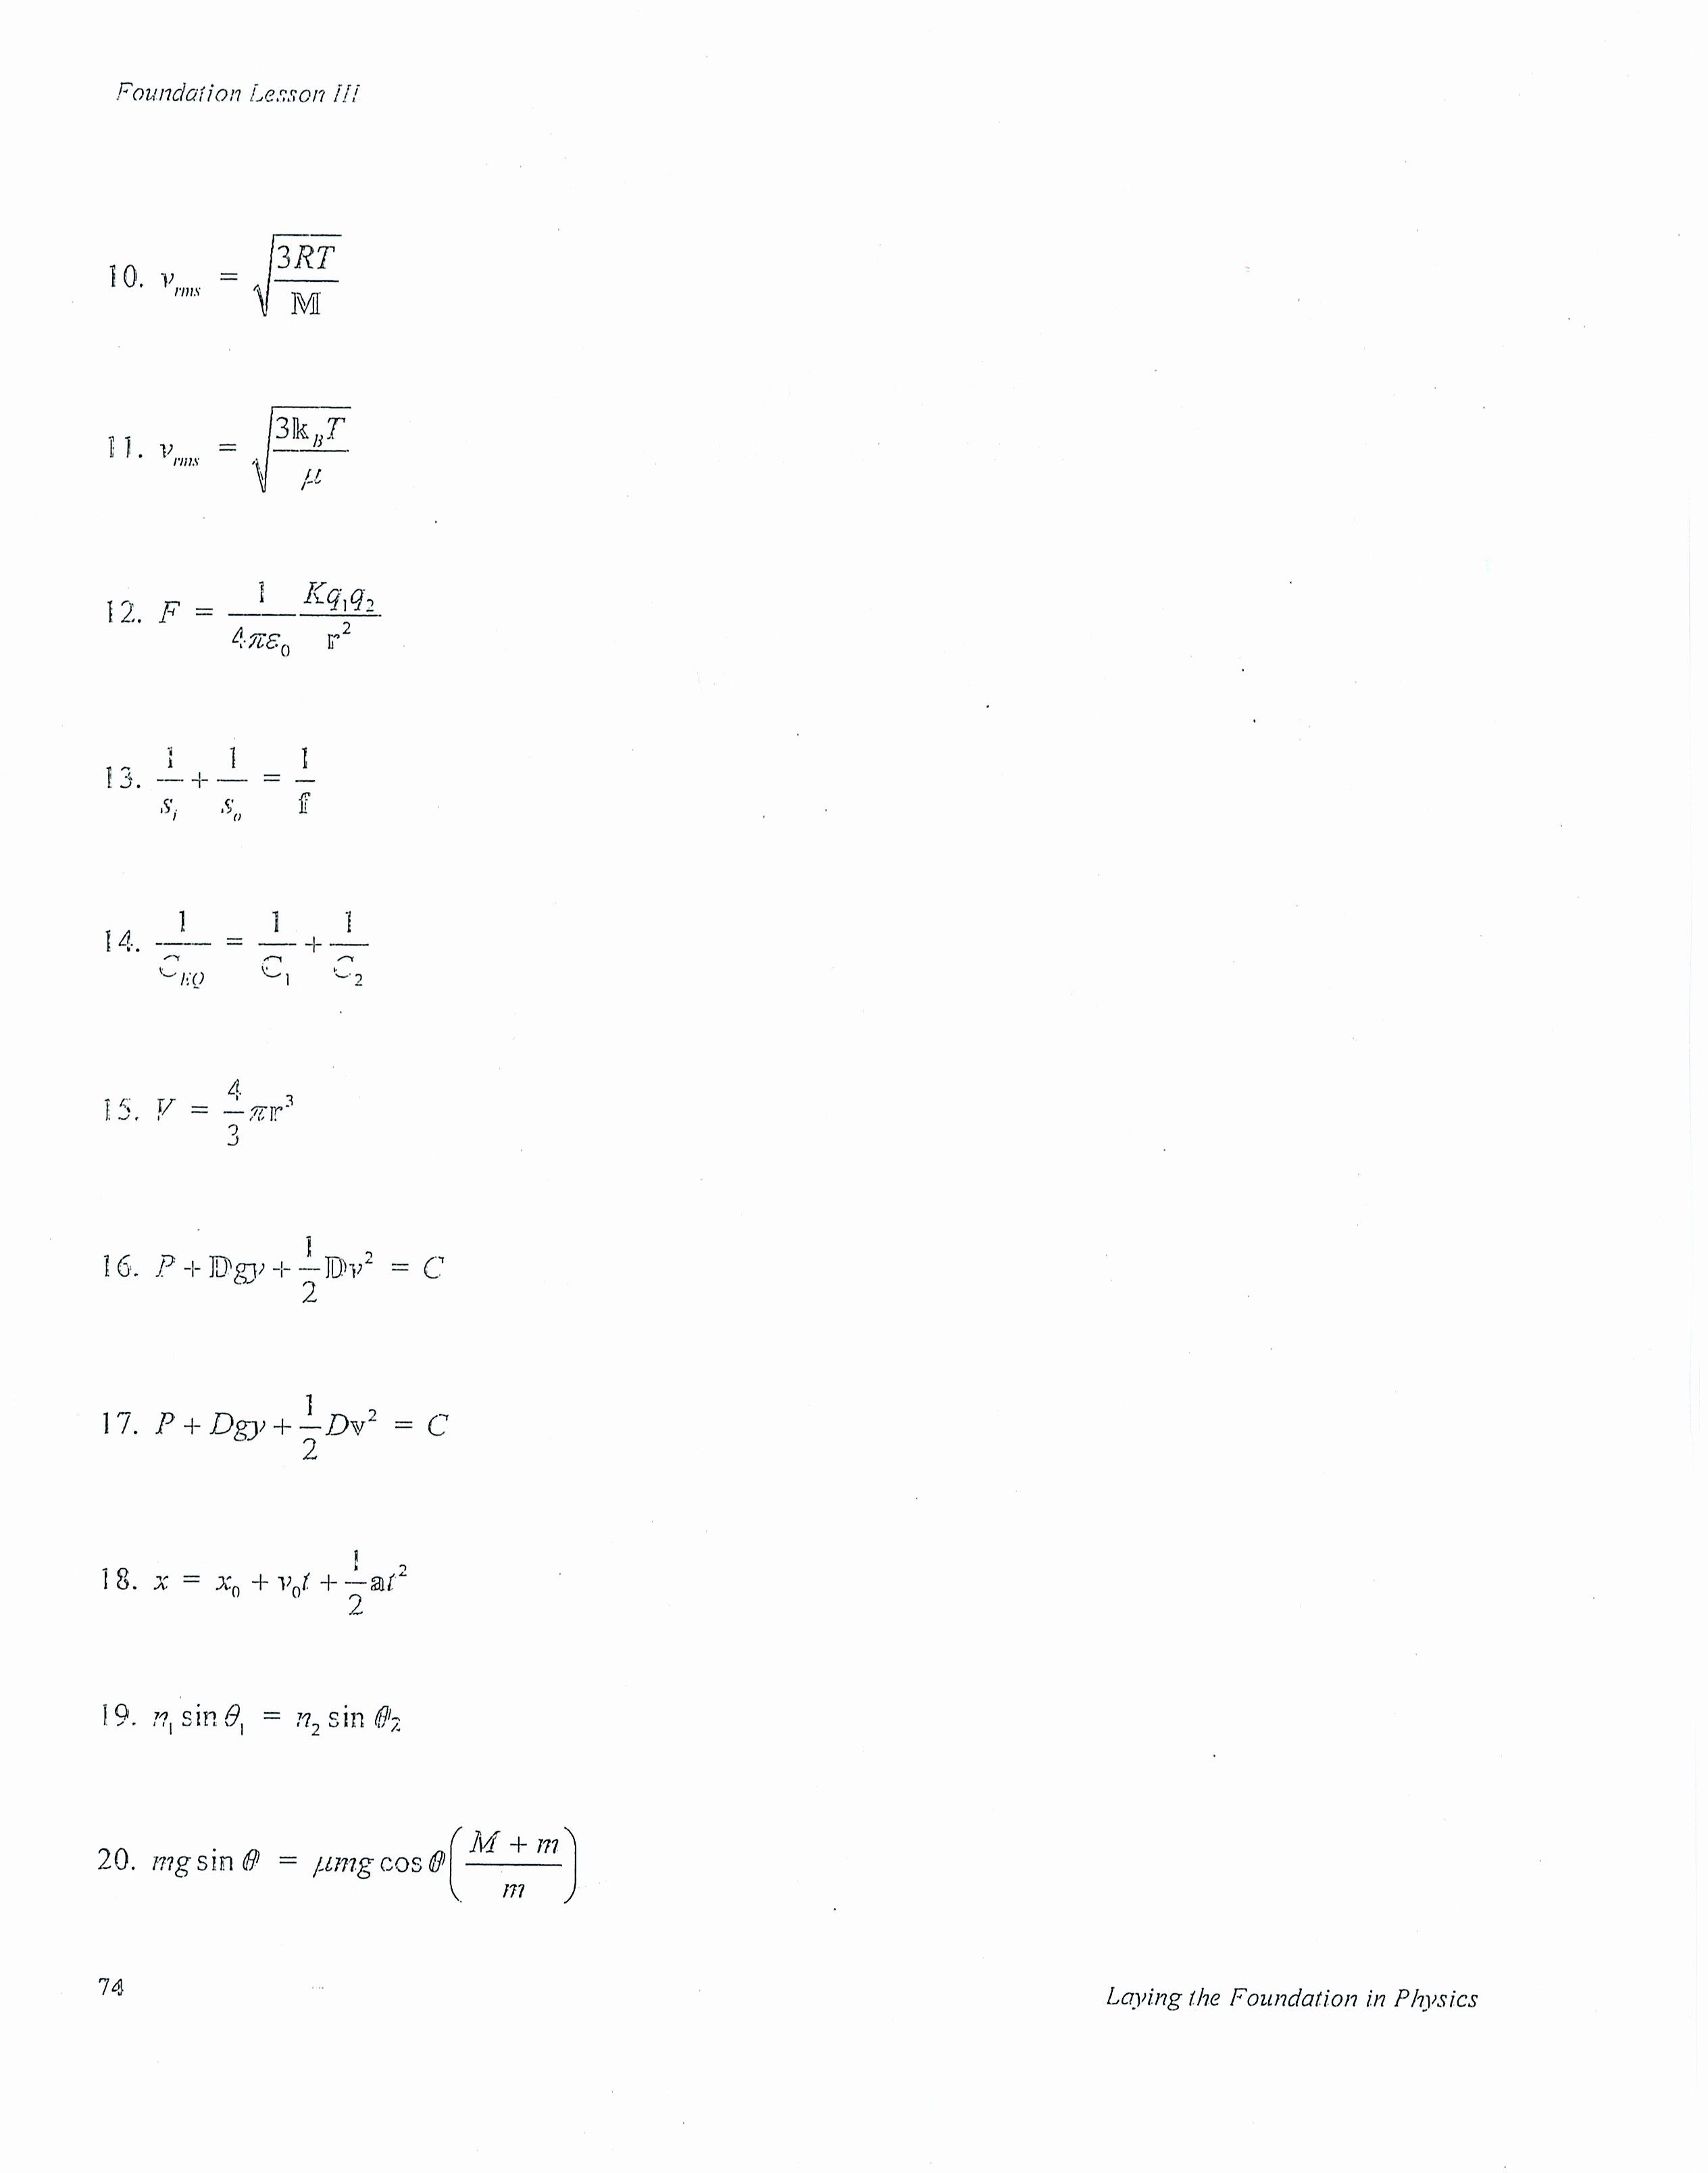 Literal Equations Worksheet Answer Key Beautiful Solving